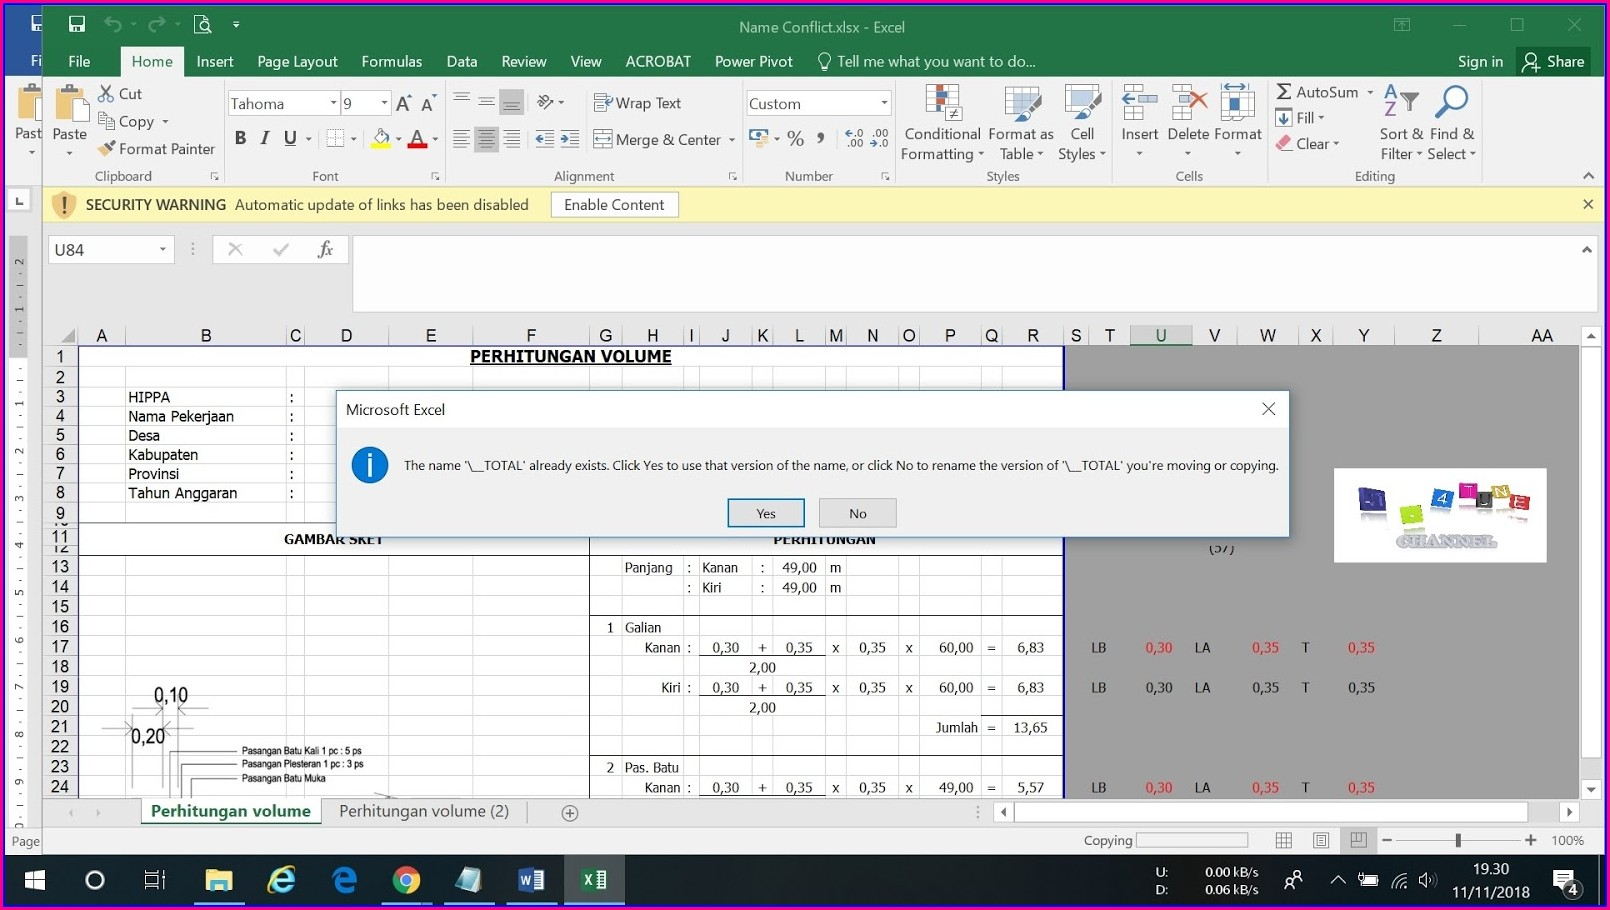 Vba Copy Sheet With New Name